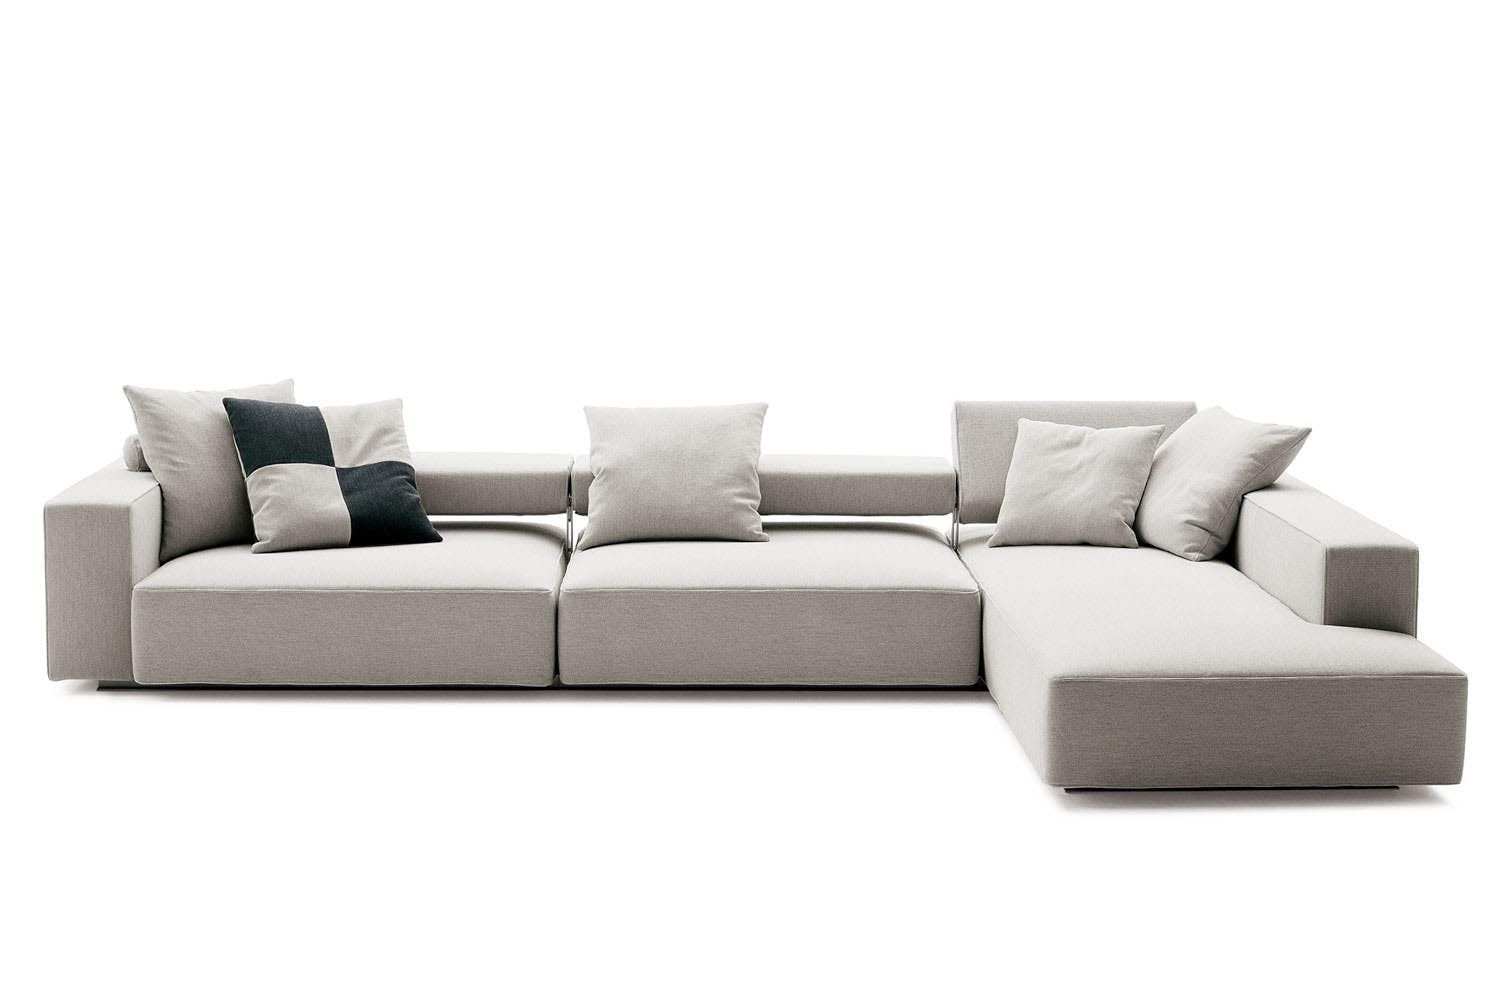 bb italia sofa sofa richard b italia design by antonio citterio thesofa. Black Bedroom Furniture Sets. Home Design Ideas